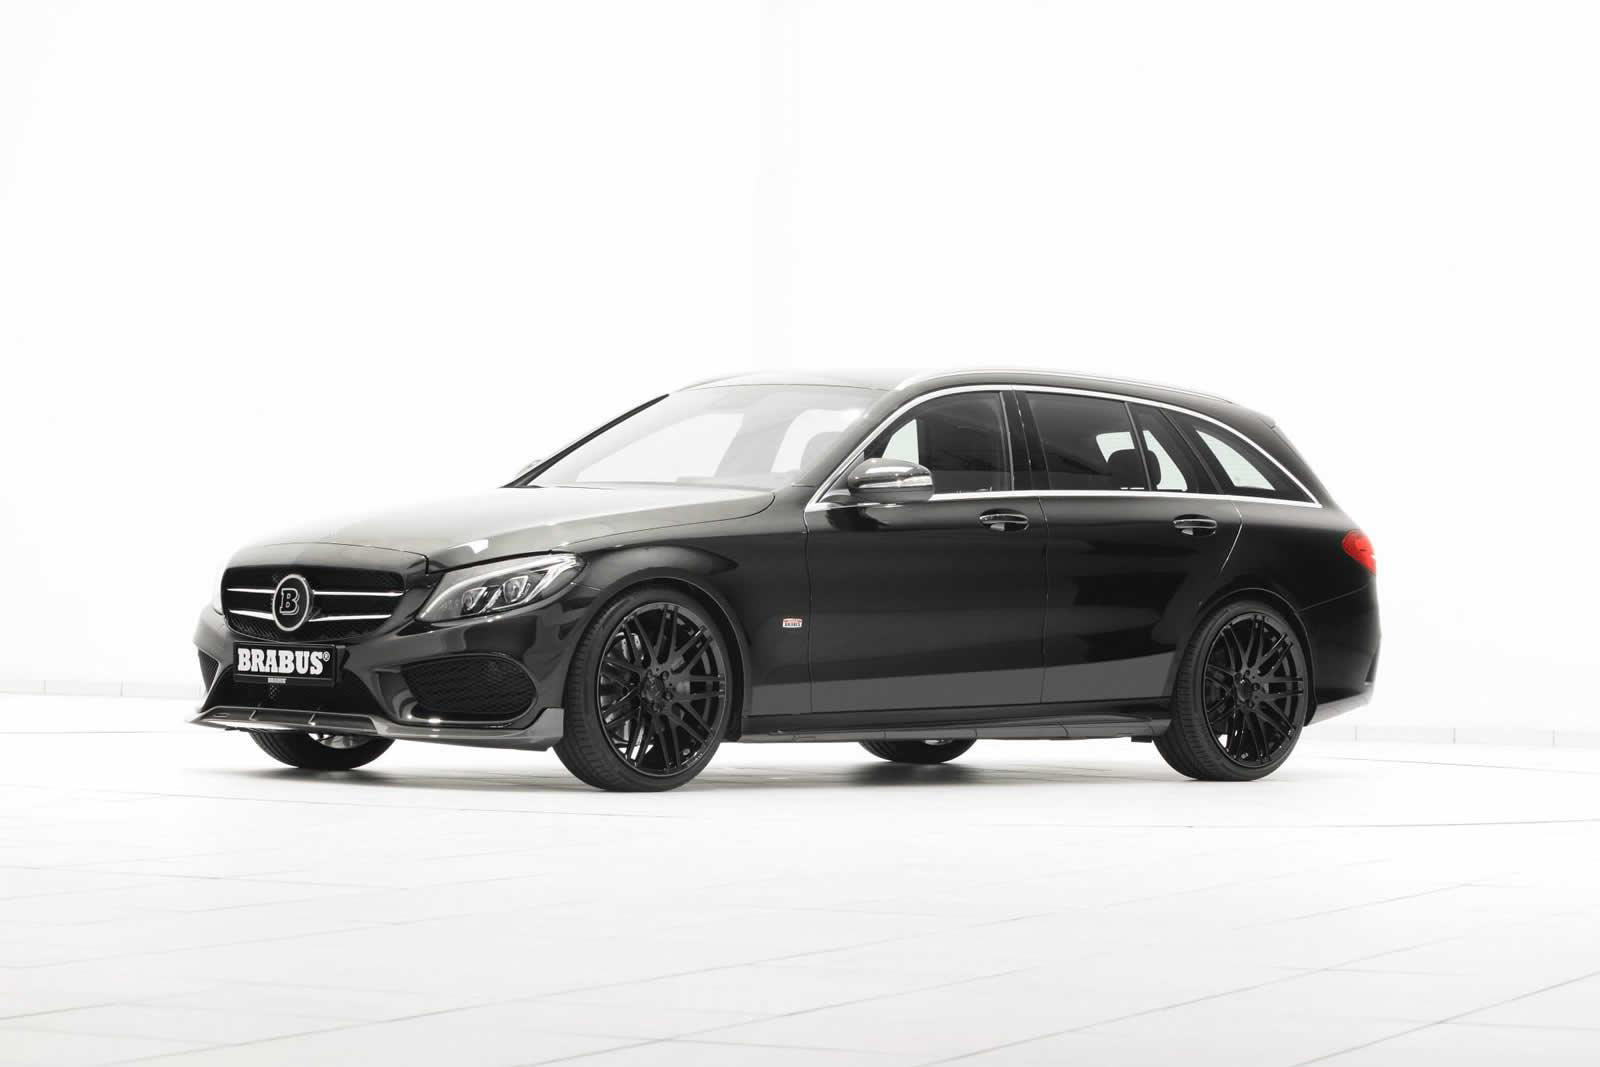 Brabus mercedes benz c class wagon for Mercedes benz g wagon review